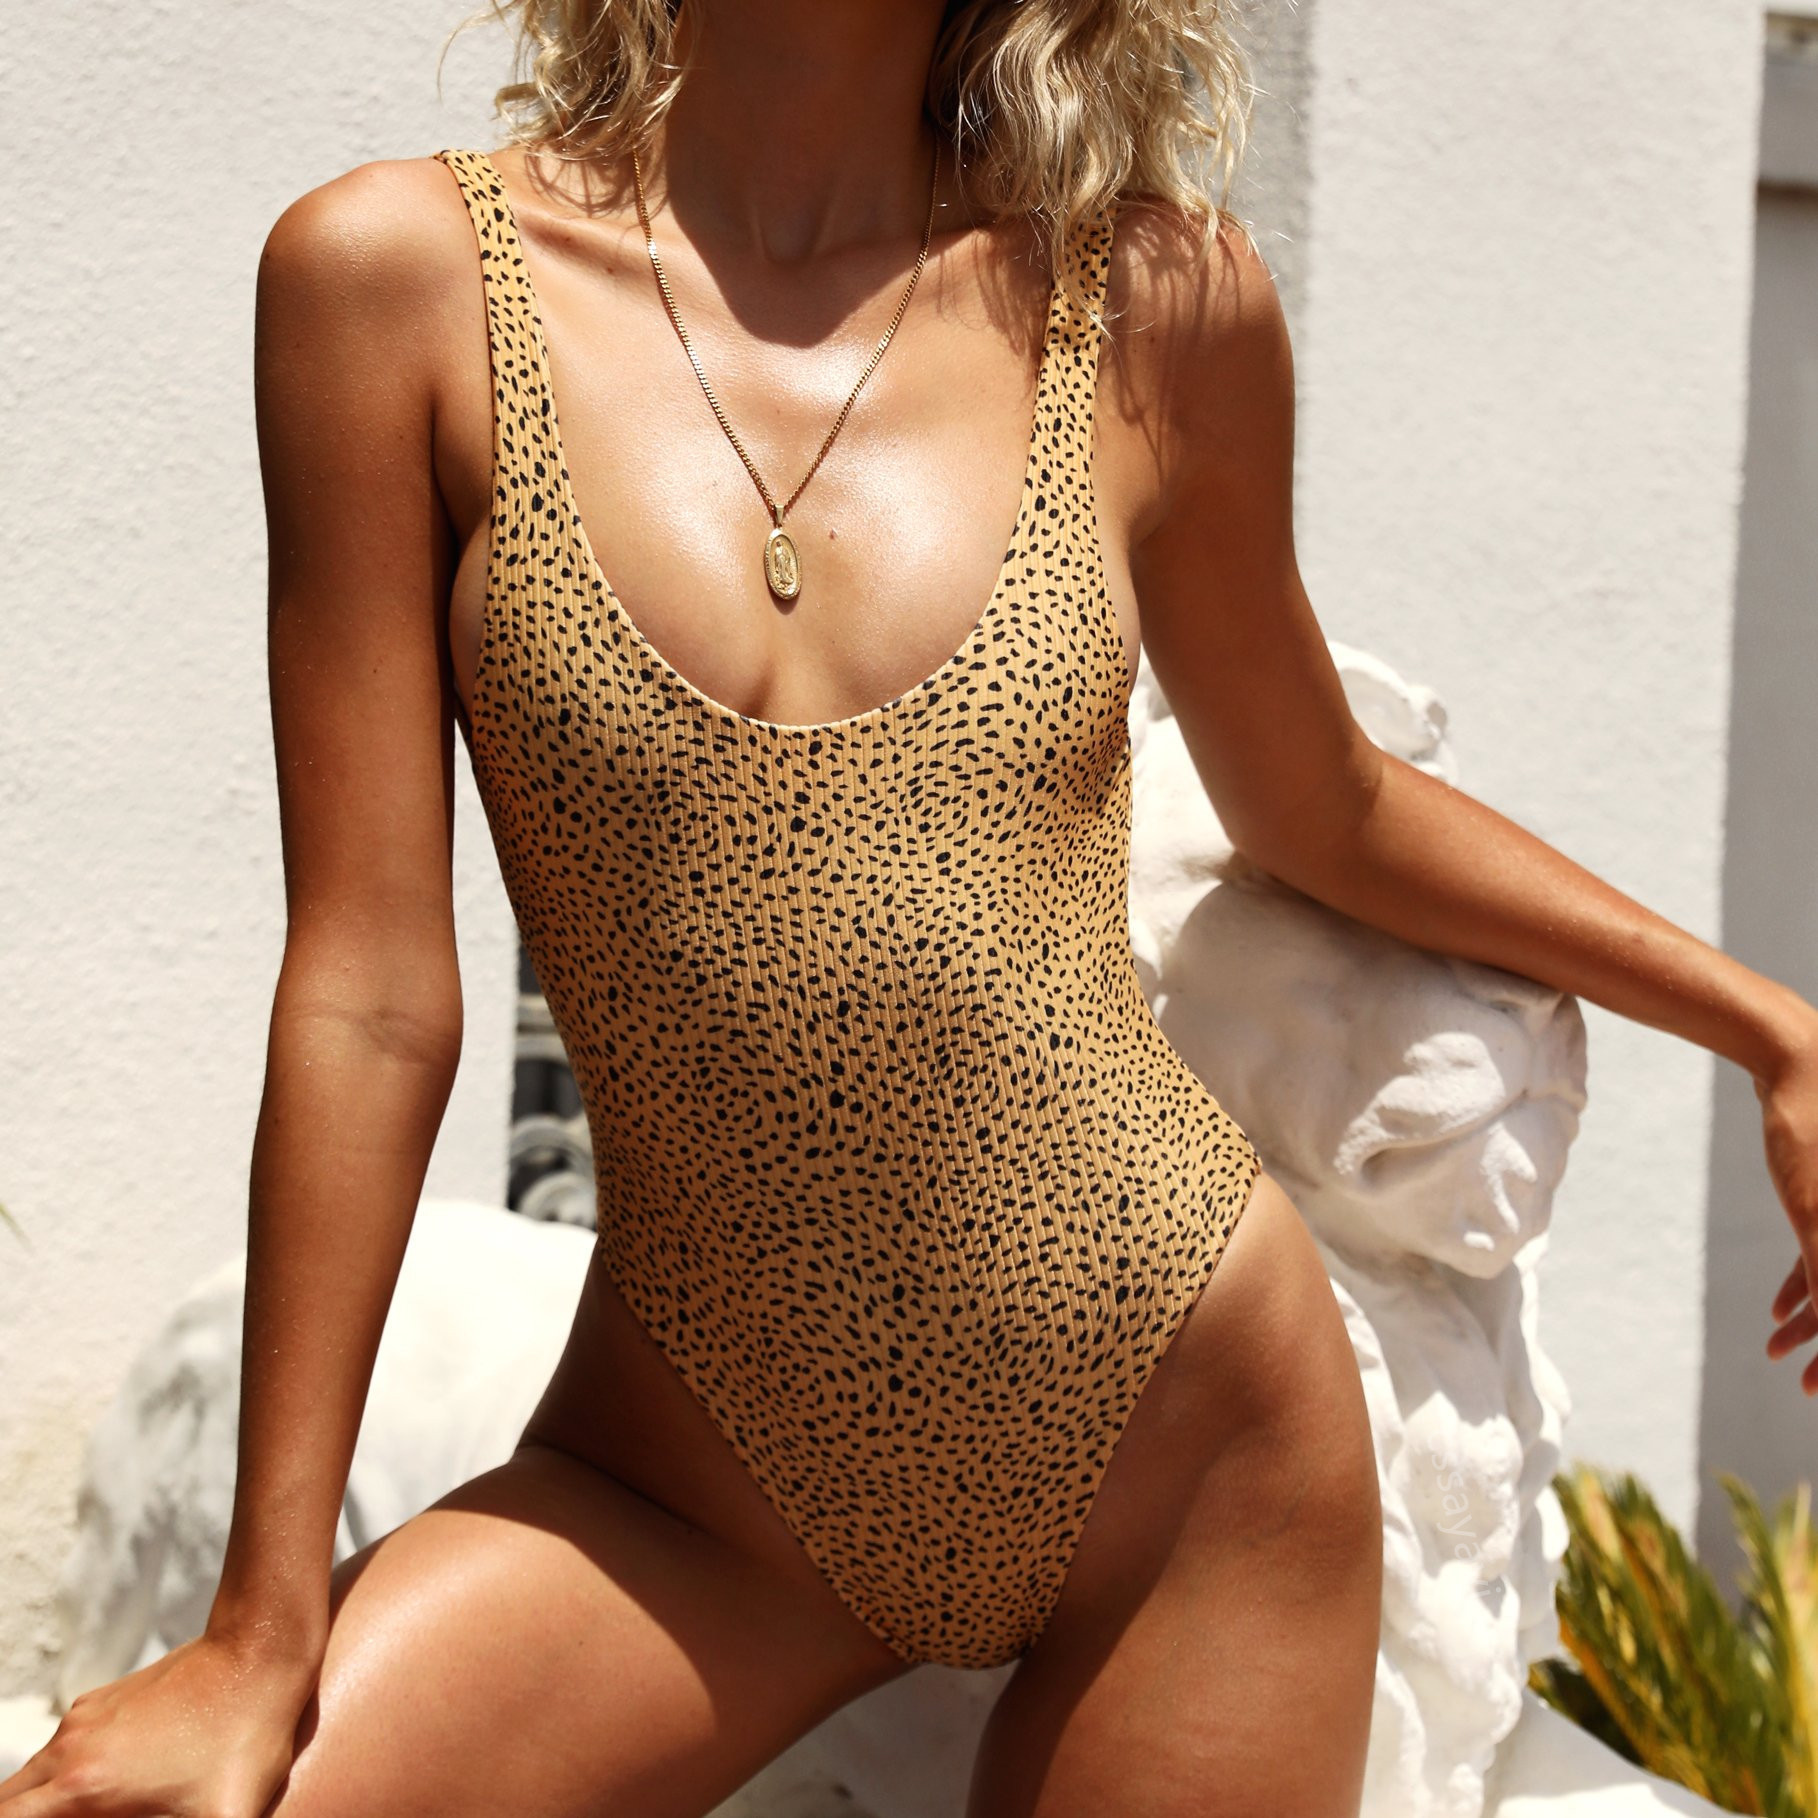 Swimsuit <font><b>Bikini</b></font> Sexy Leopard Swimsuit Women Swim Suit Women Swimwear Monokini Deep V <font><b>Brazilian</b></font> Body Suit Female <font><b>Sex</b></font> Wholesale image